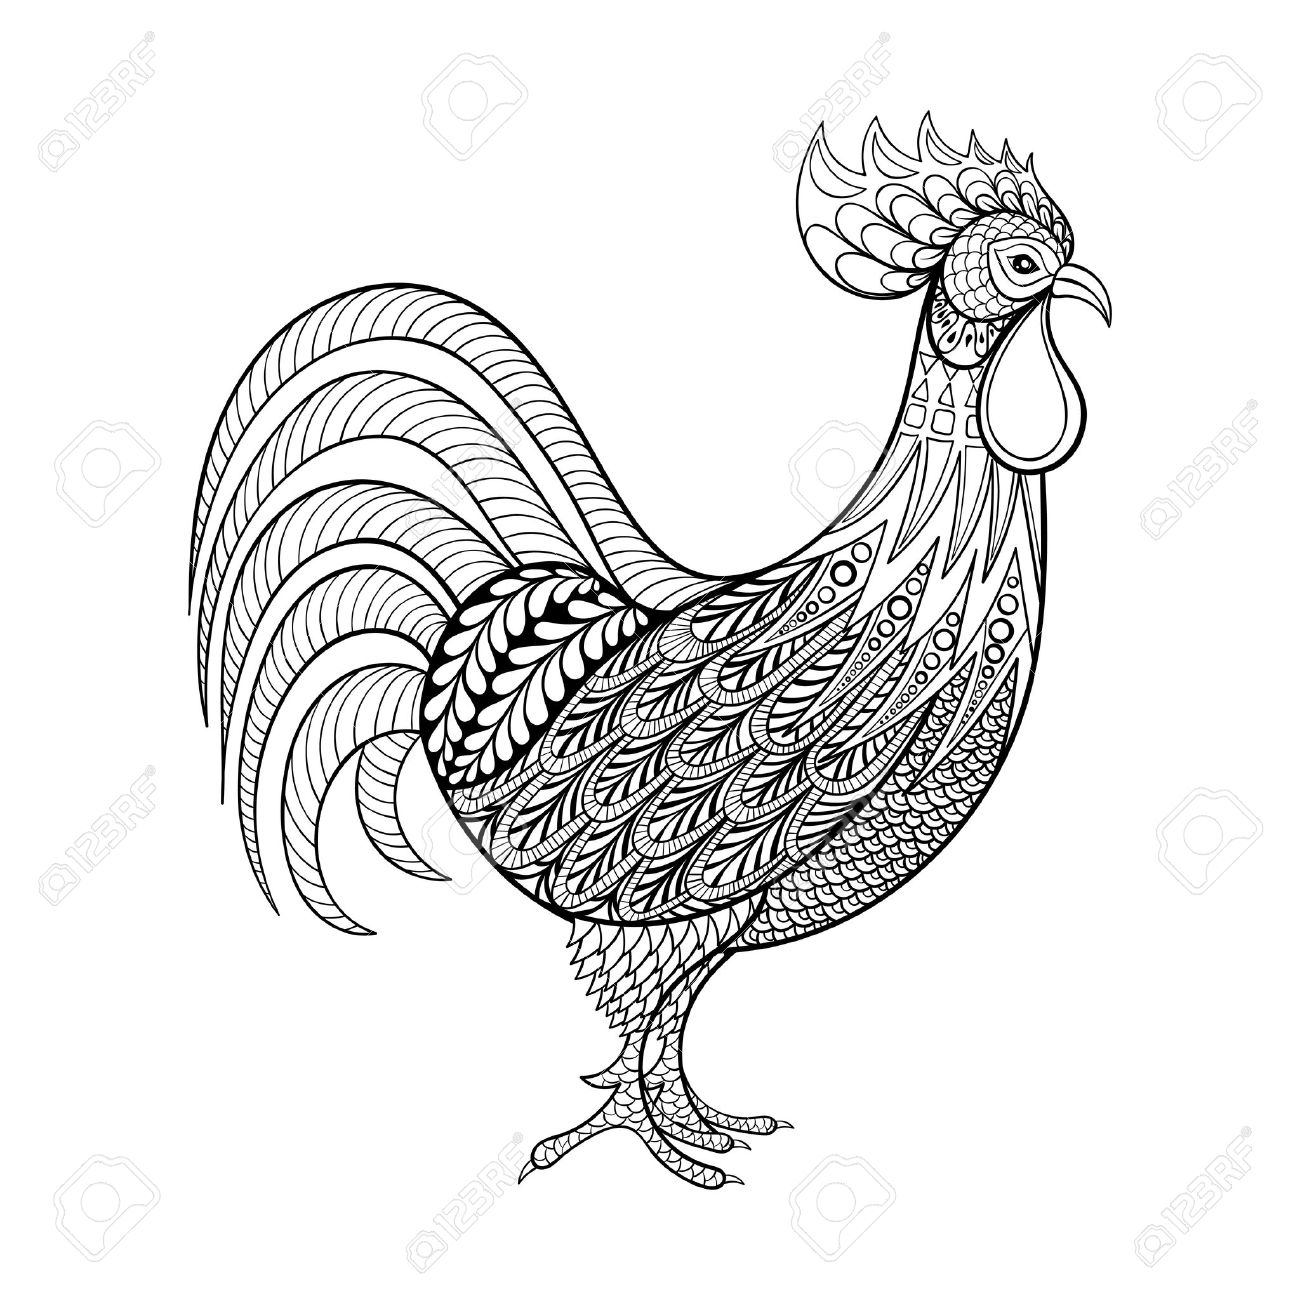 Rooster chicken domestic farmer bird for coloring pages zentangle illustartion for adult anti